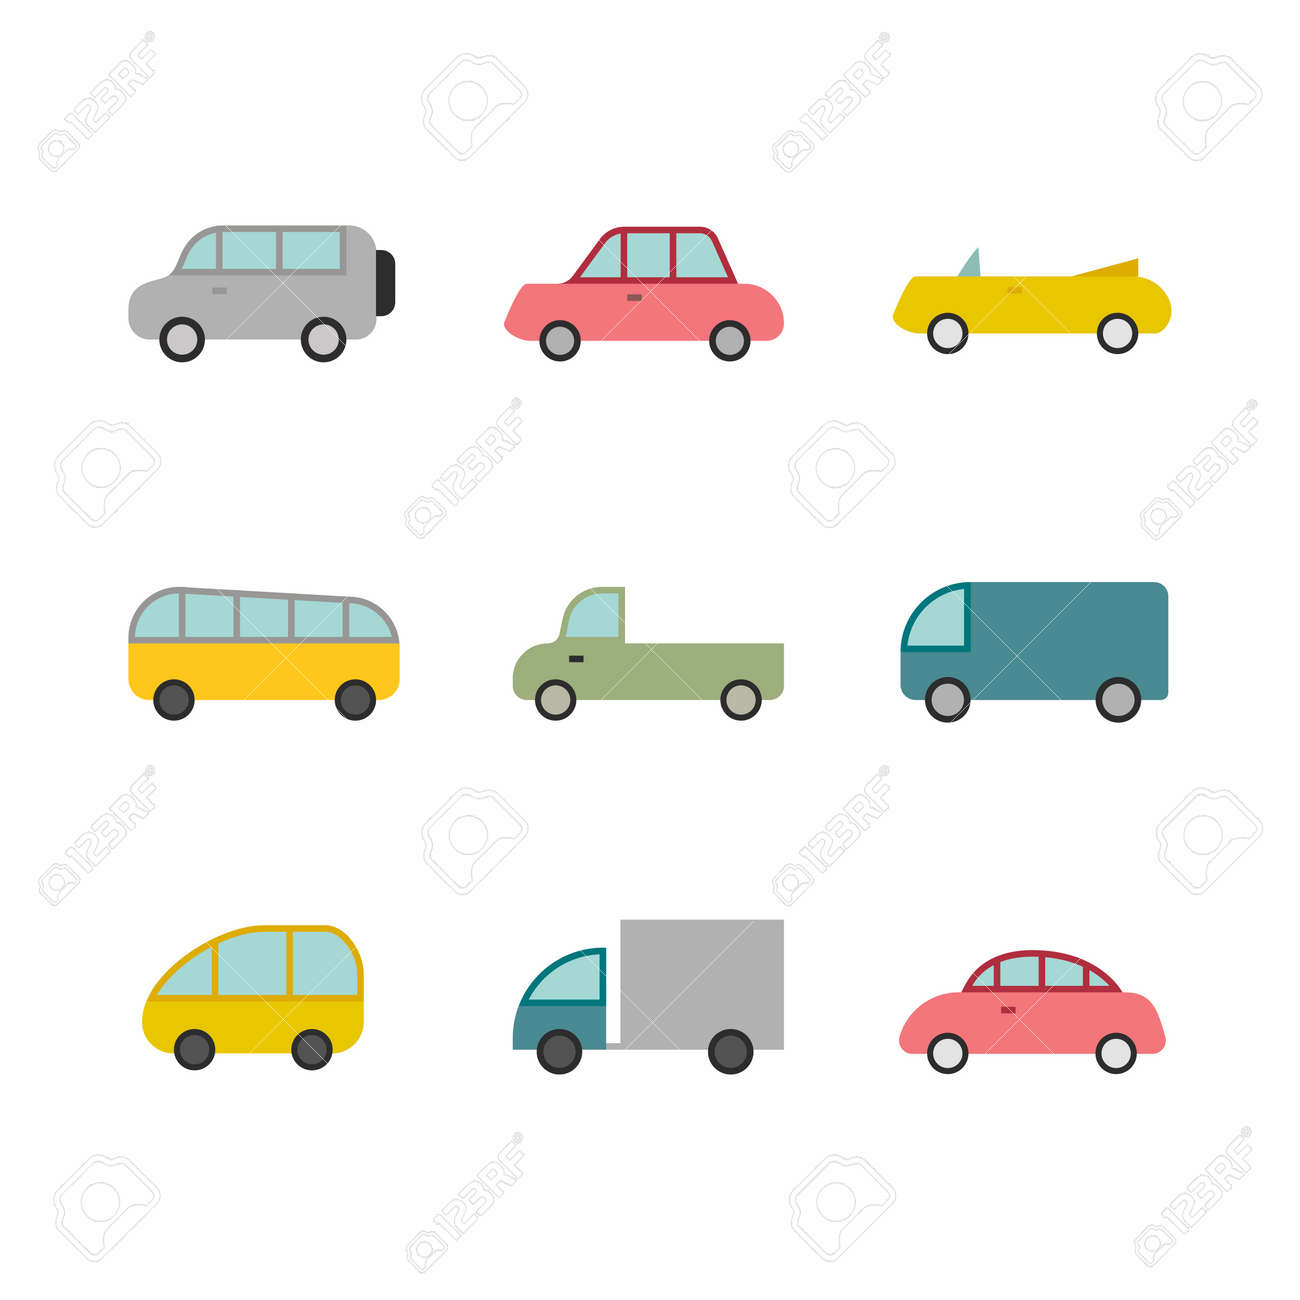 Car transport icon,sign,pictogram,symbol set isolated on a background flat style - 125913686